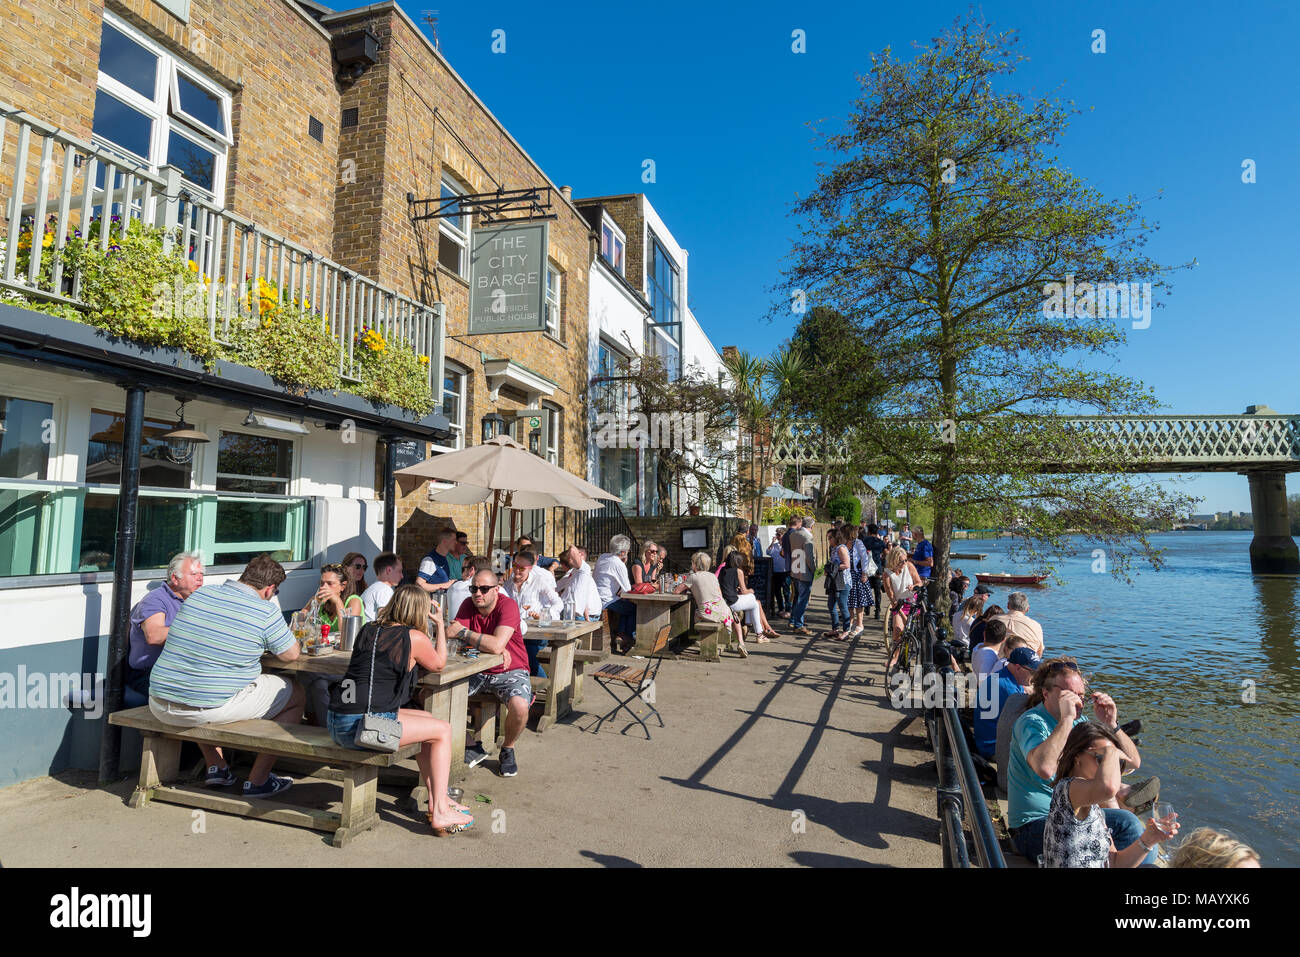 The City Barge Thames riverside pub, Strand-on-the-green, Chiswick, London, UK - Stock Image